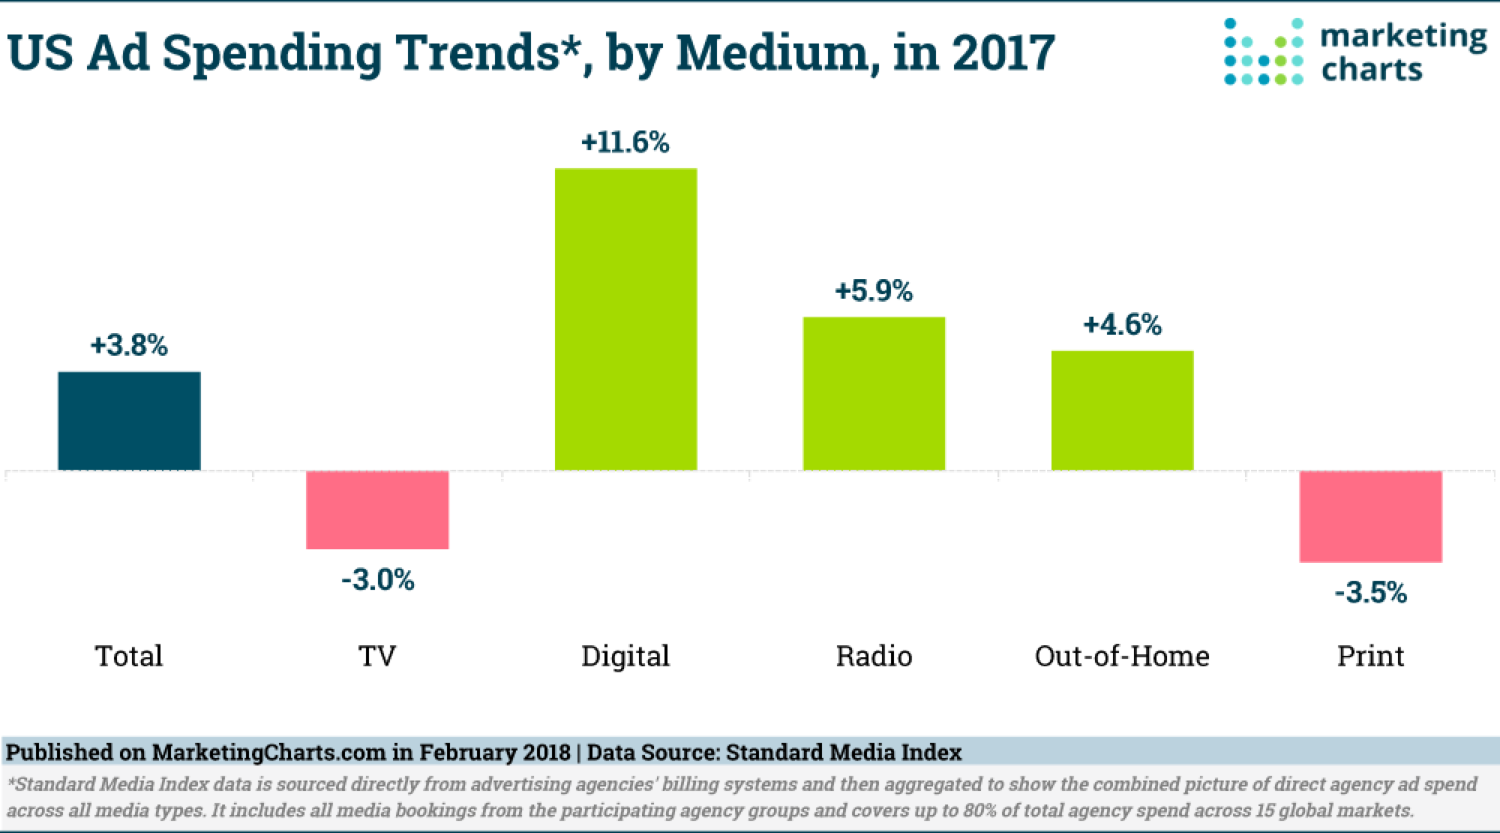 US Ad Spend on Digital